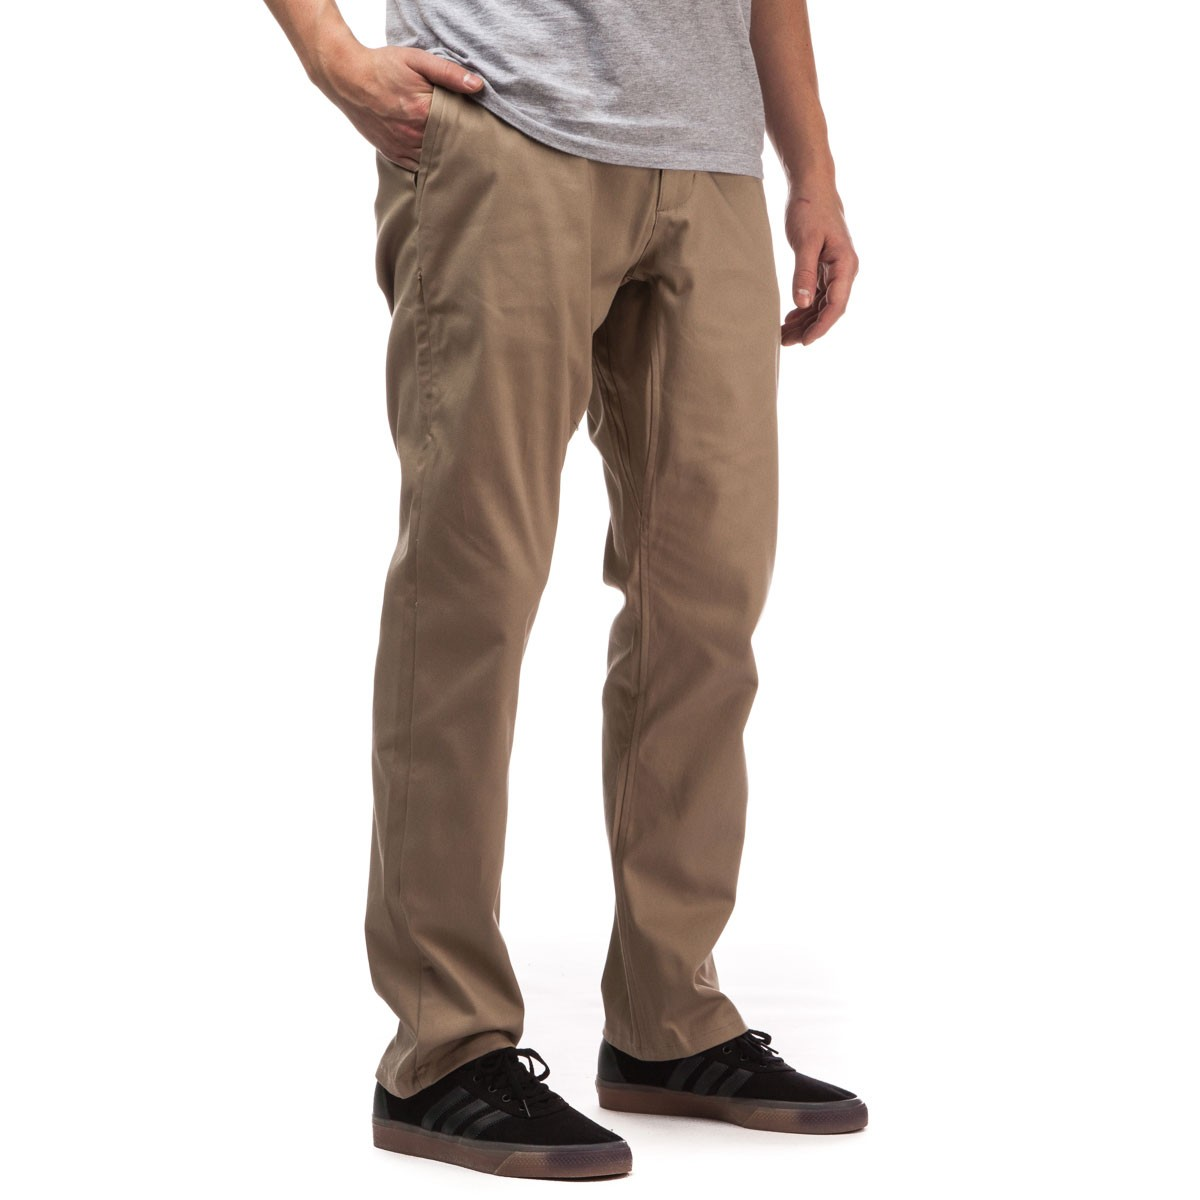 f910cd81fefb3 Nike SB FTM Chino Pants - Khaki - 34 - 32